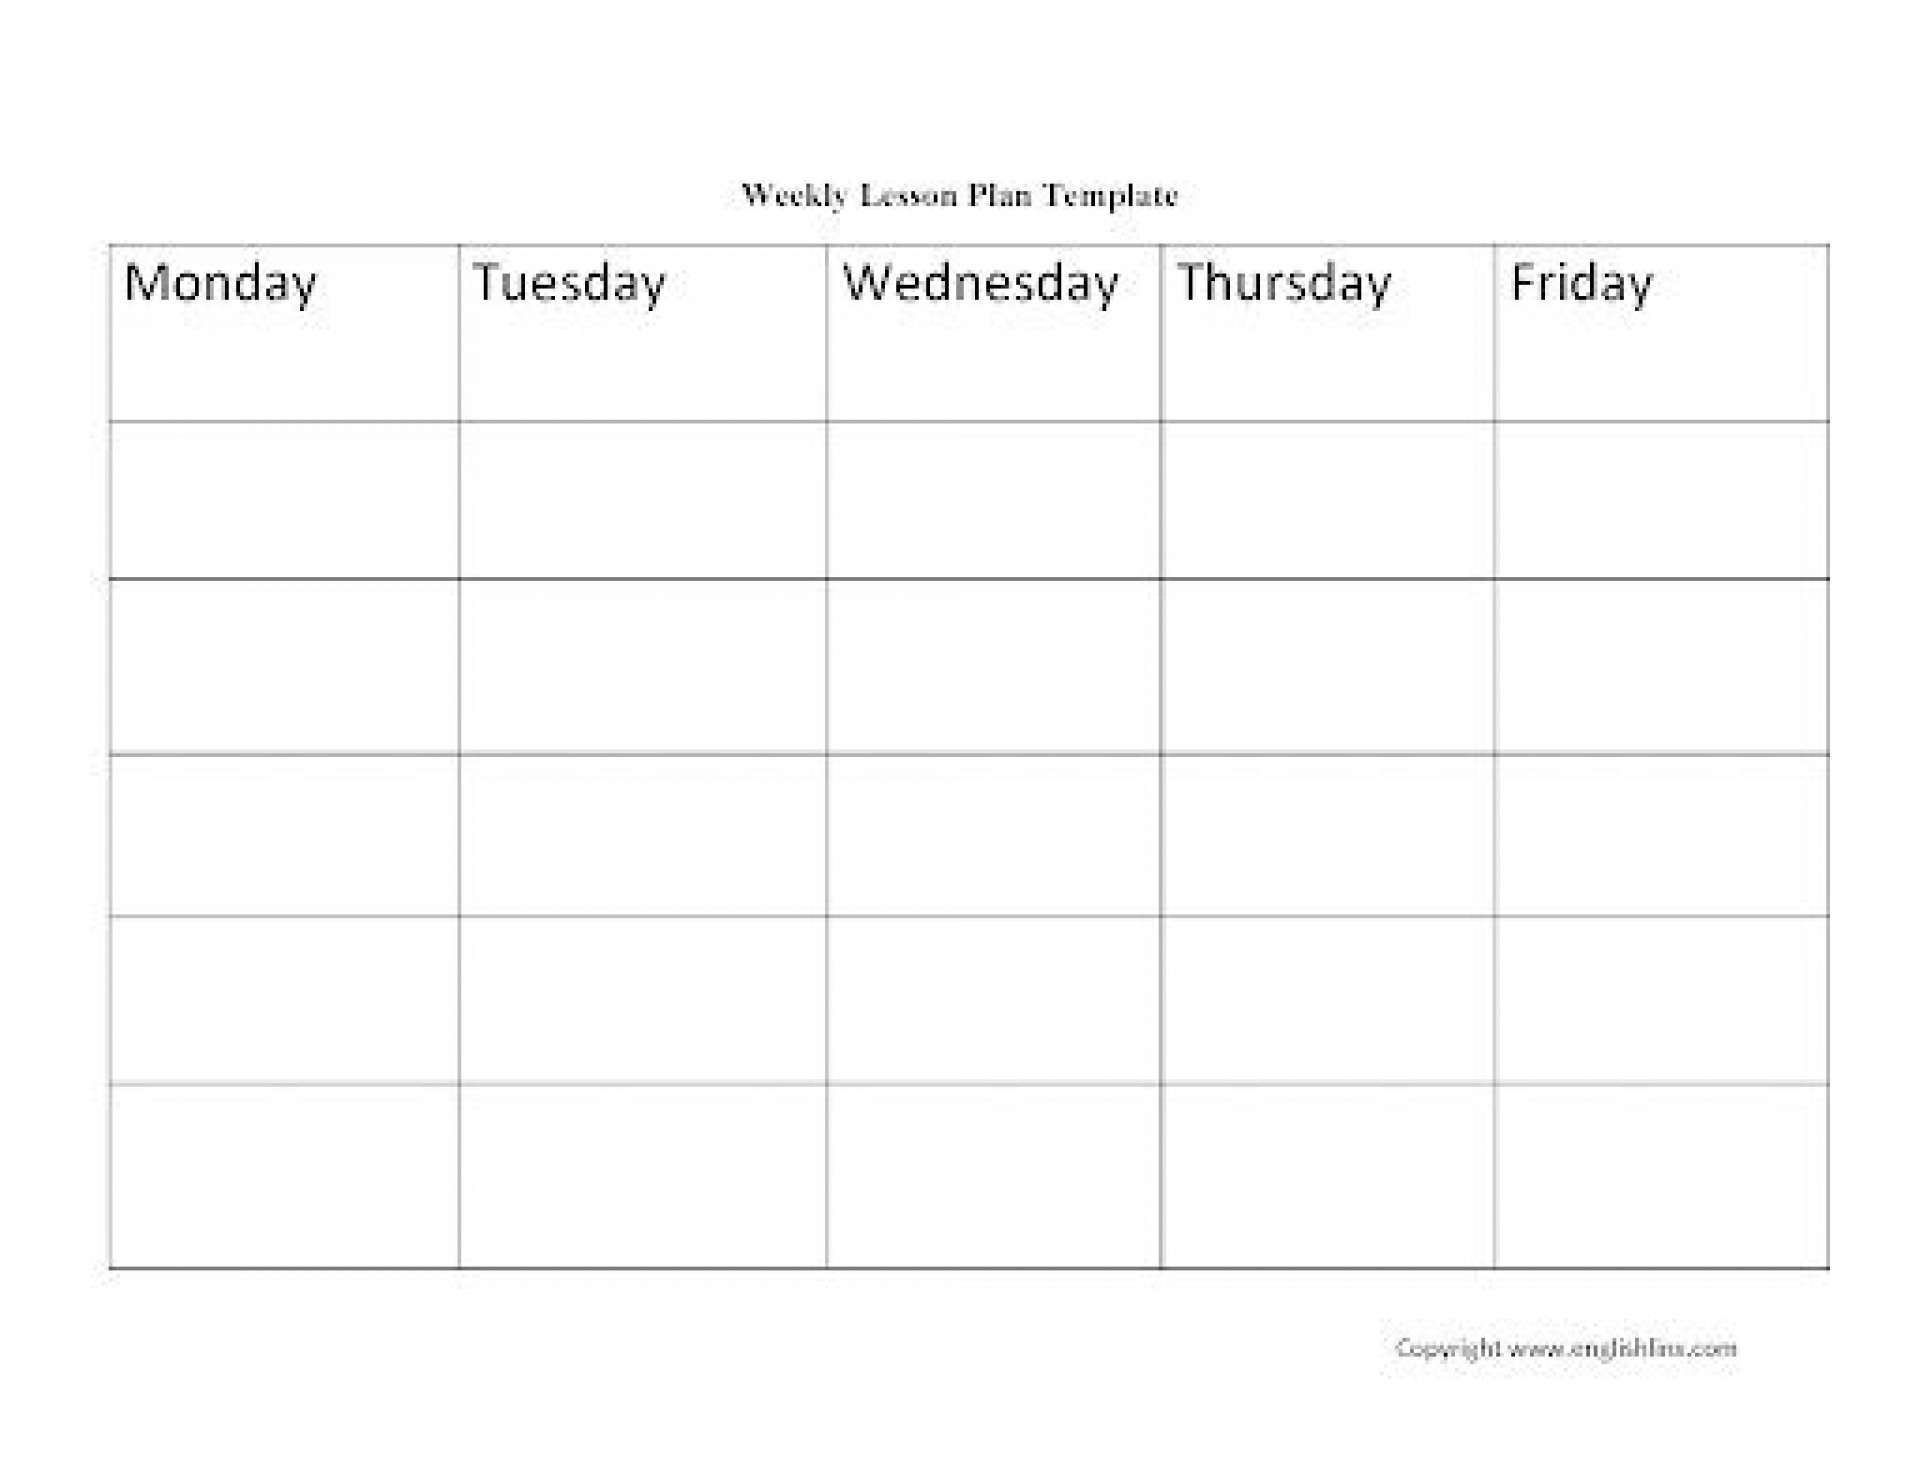 009 Excellent Weekly Lesson Plan Template Idea  Blank Free High School Danielson Google Doc1920